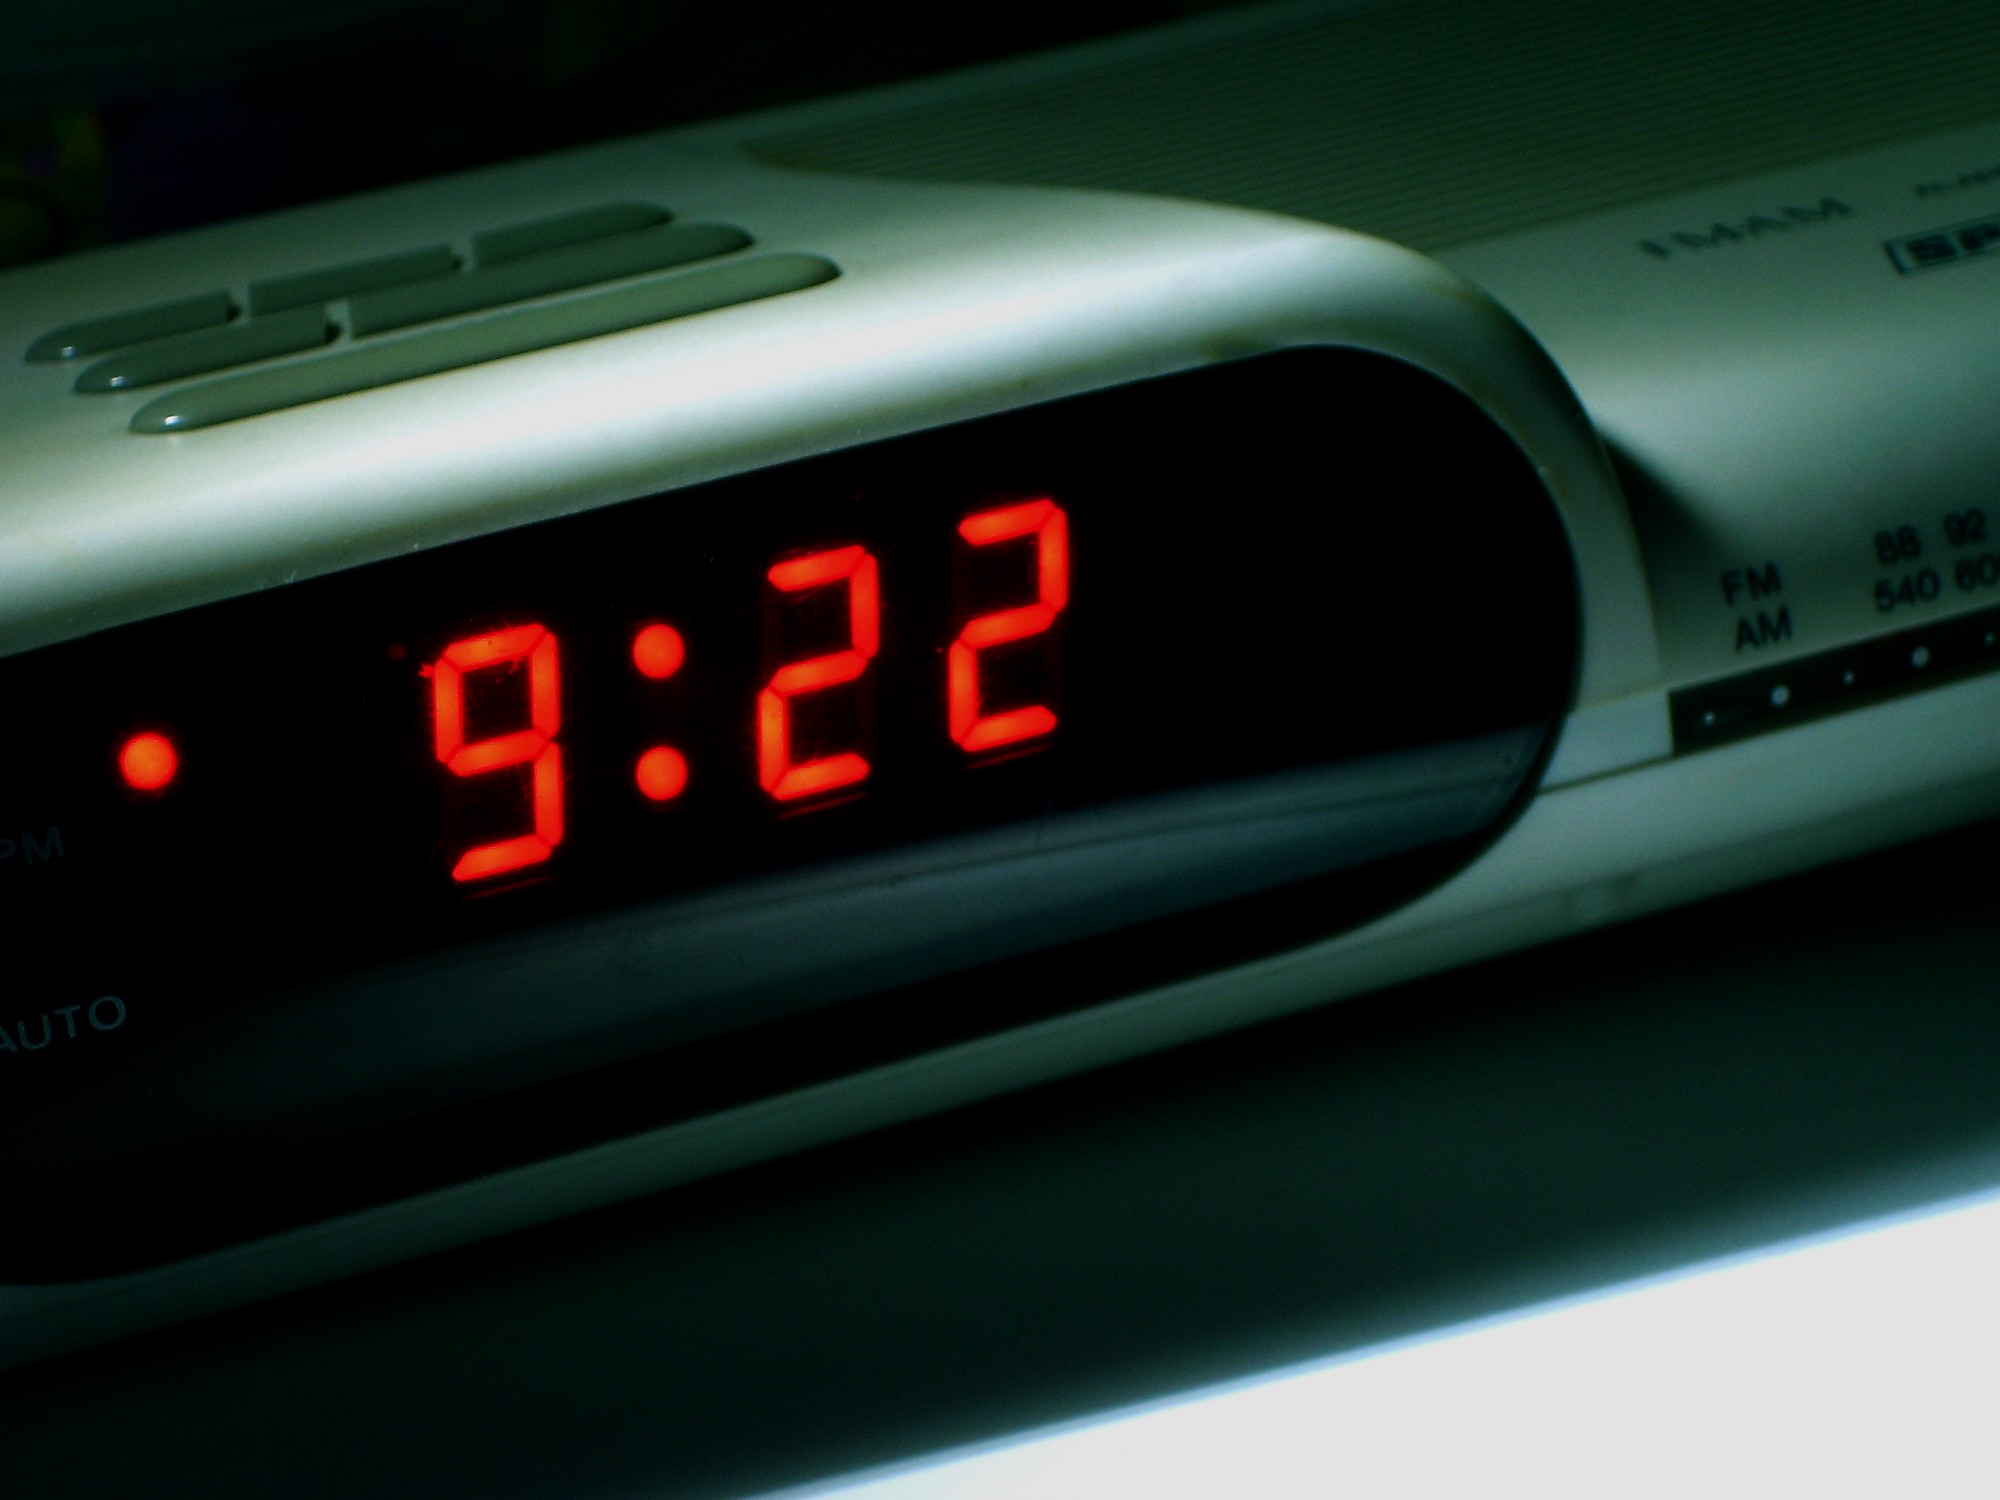 Digital Alarm Clock History The Worst Part Of Waking Up Game Show Timer Buzzer Electronic Circuits Its Way Bleeds Into Your Eye Sockets Douglas Heriot Flickr